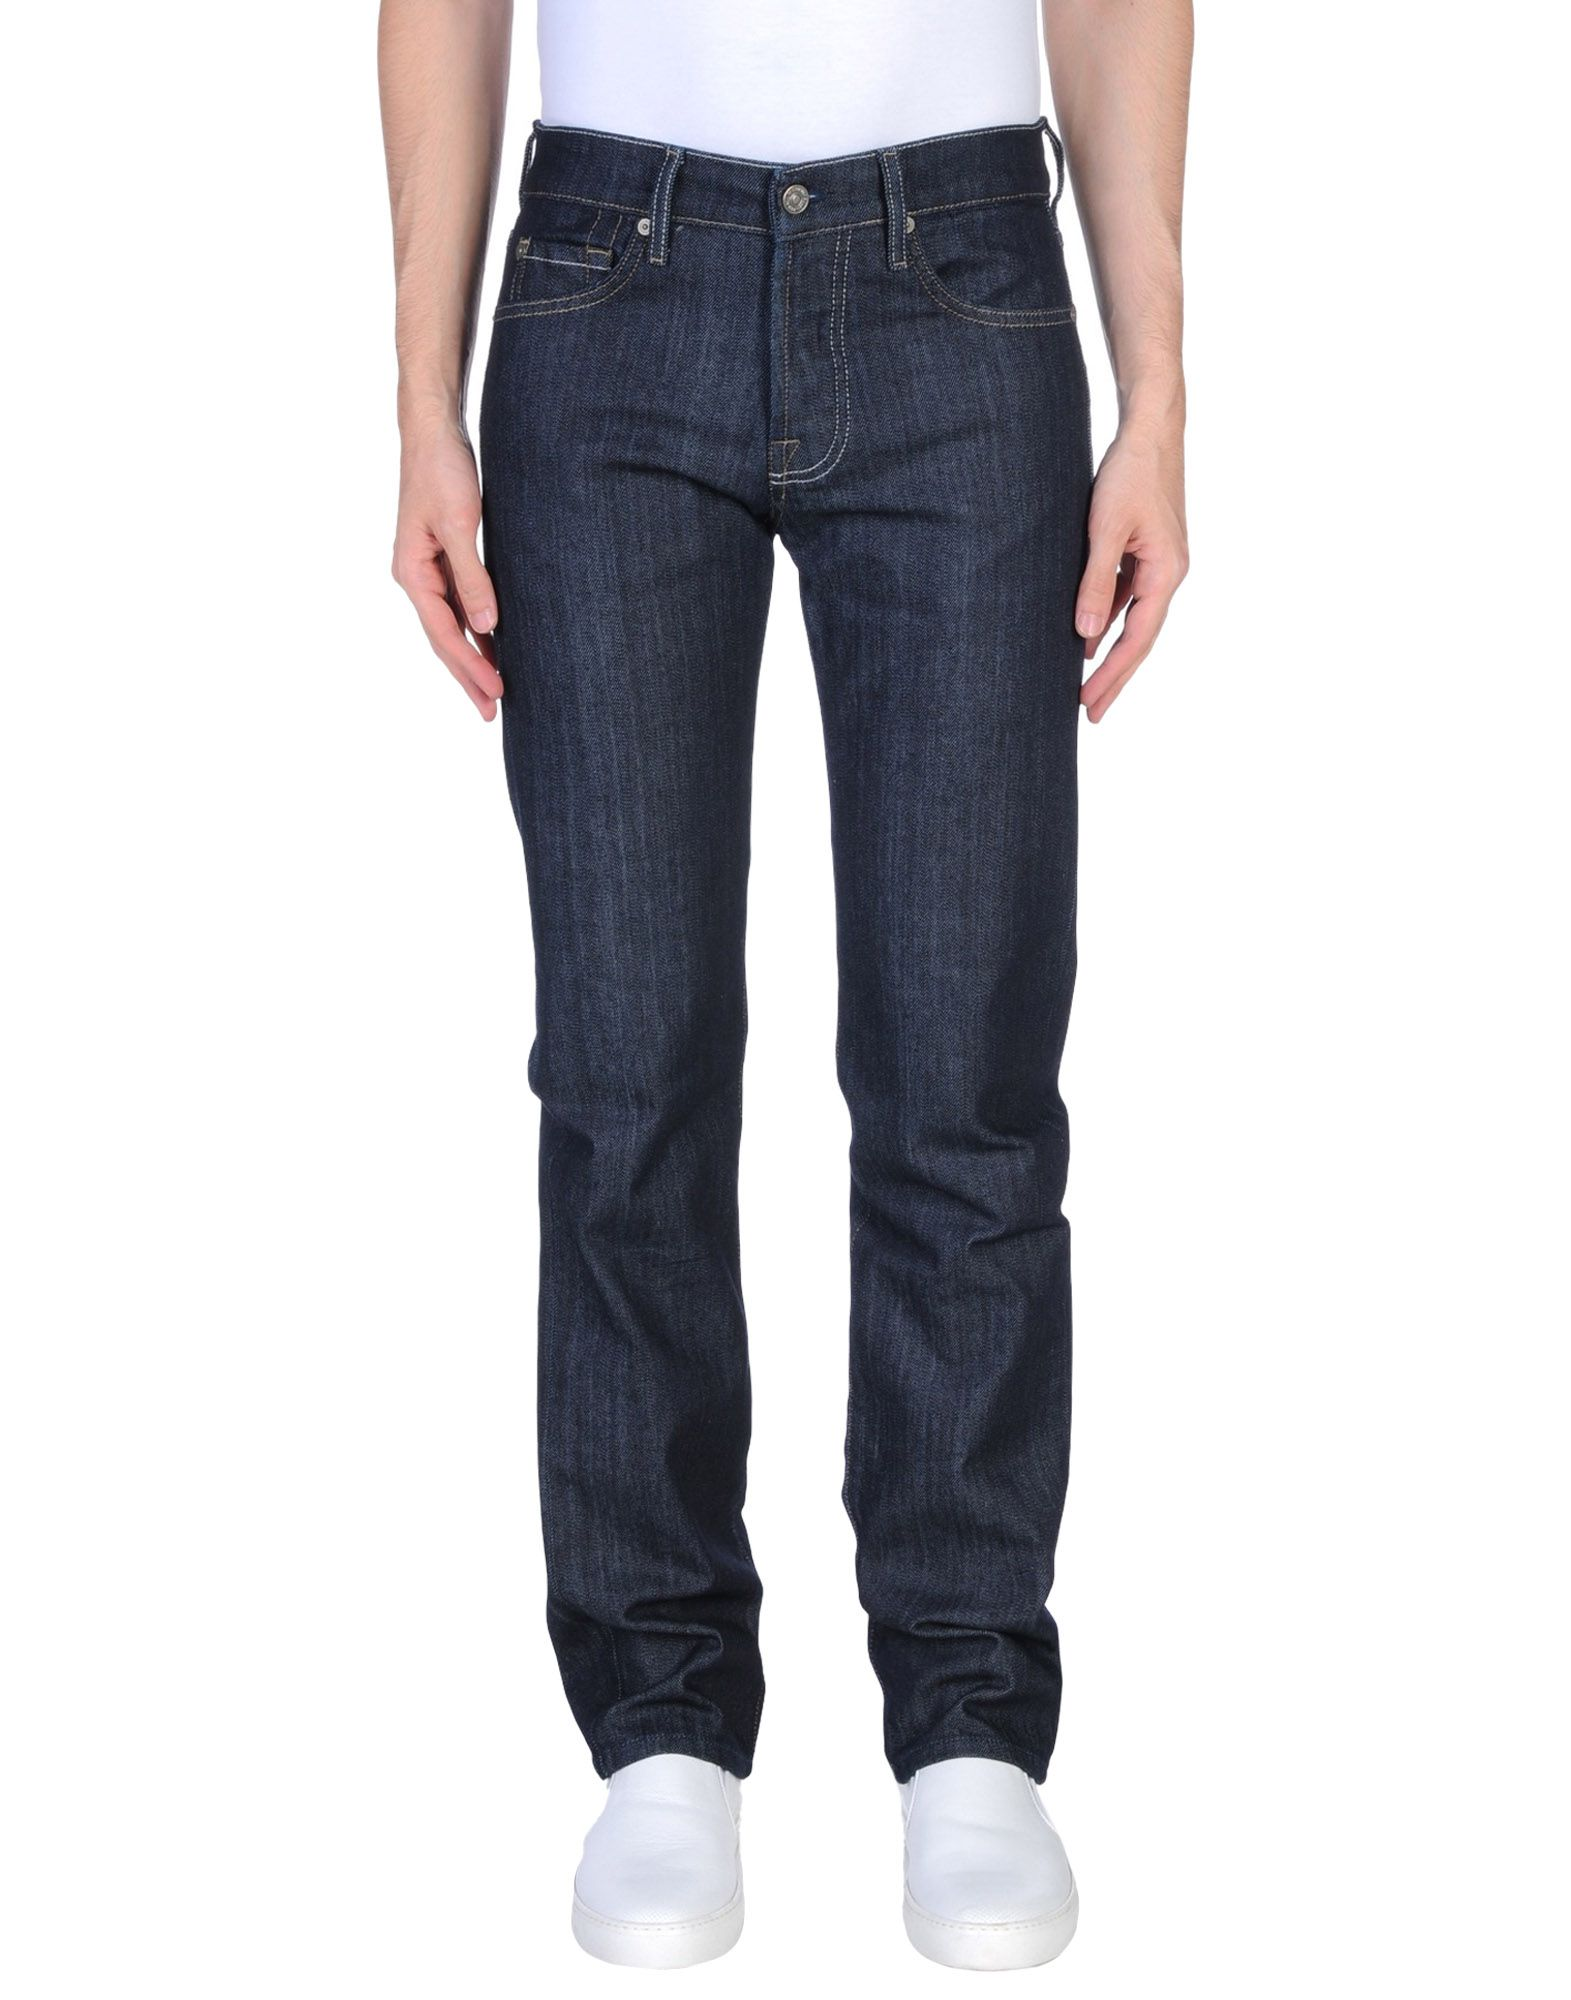 Pantaloni Jeans 7 7 7 For All Mankind Uomo - 42629424VC 08d783